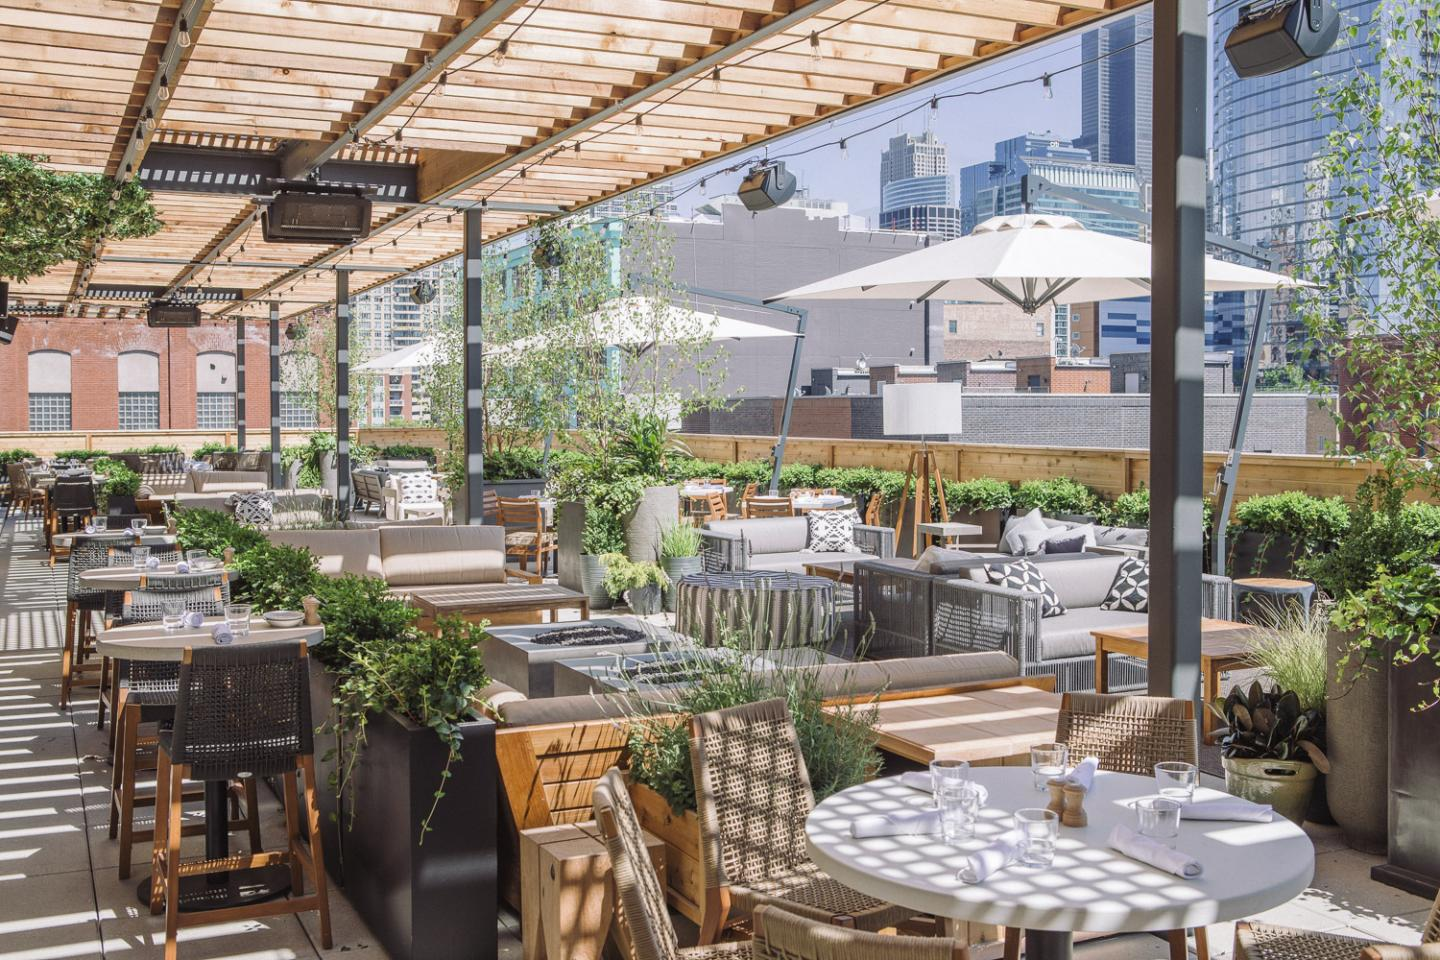 Ordinaire Now Open: Aba Brings Mediterranean Summer Vibes To Chicago